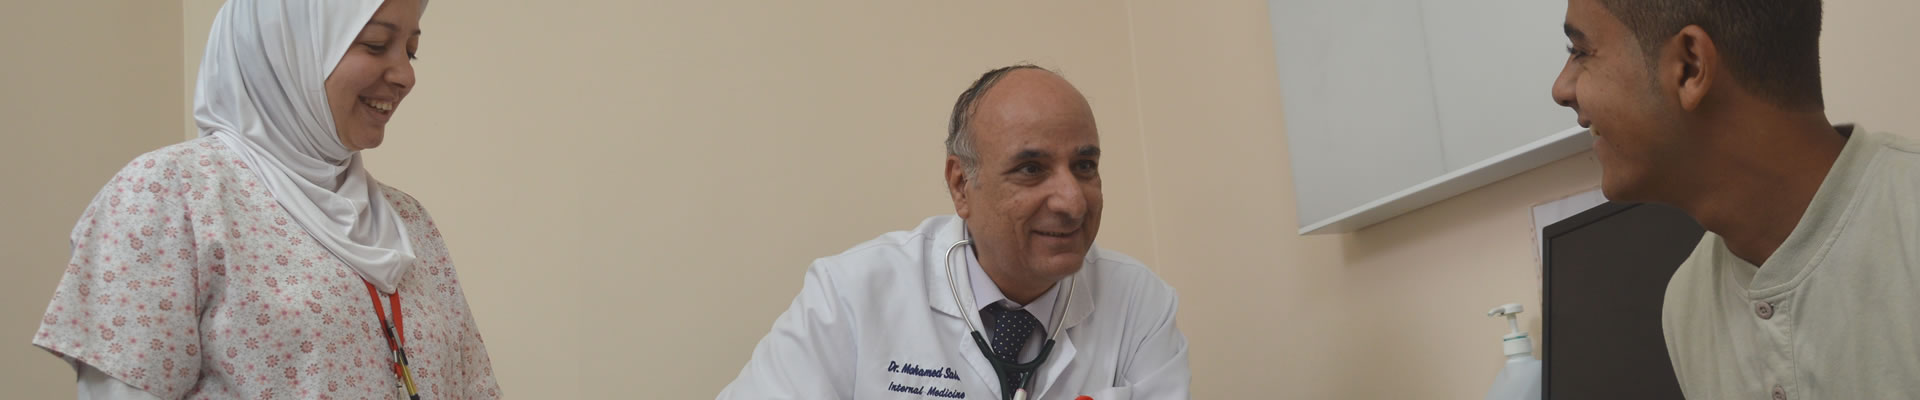 best-hospital-middle-east-aortic-center